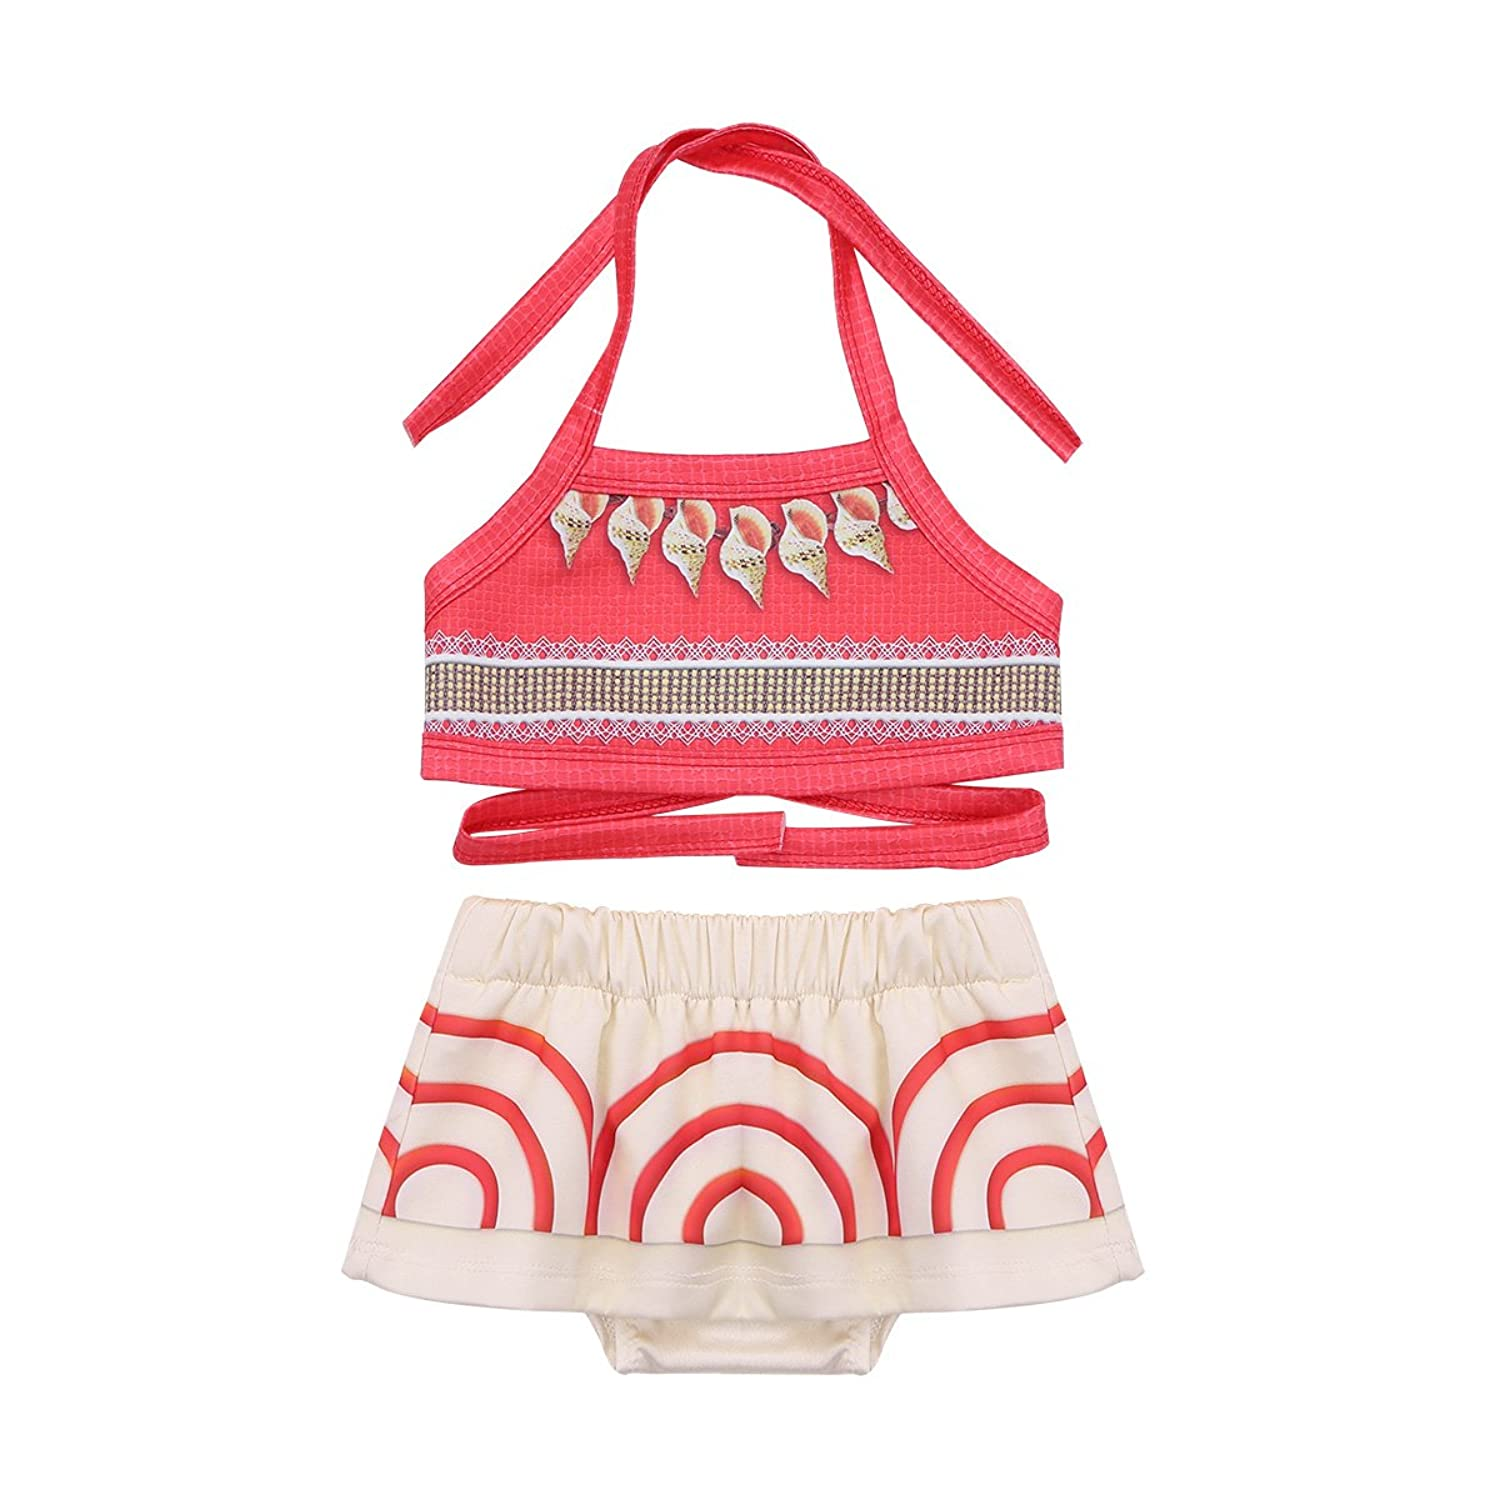 Swimsuit Is Made Of Polyester Material, Hand Wash. Size Table Means Age  Ranges For Girls, But They Are For General Guidance Only